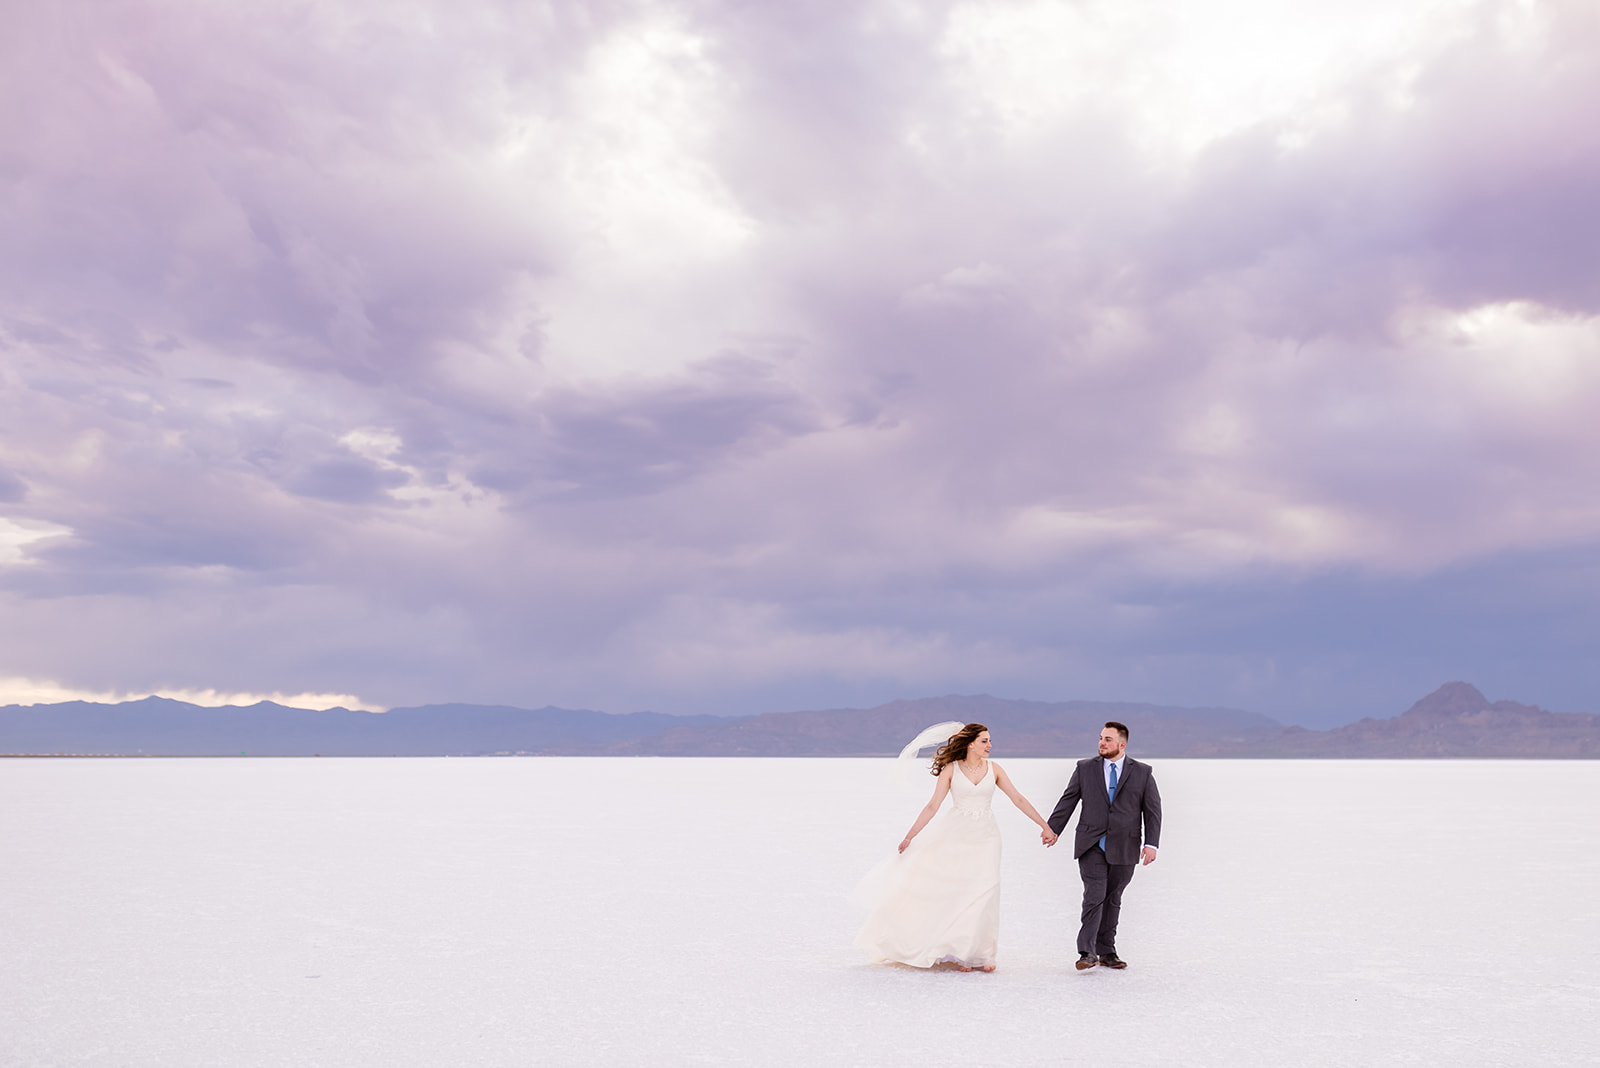 Bride and Groom walking portraits at the Bonneville Salt Falts in Utah. Grey suit and blue tie combo. Ivory and Gold wedding dress. Taken by Coley Cook Photography. Walking through the stormy skies.